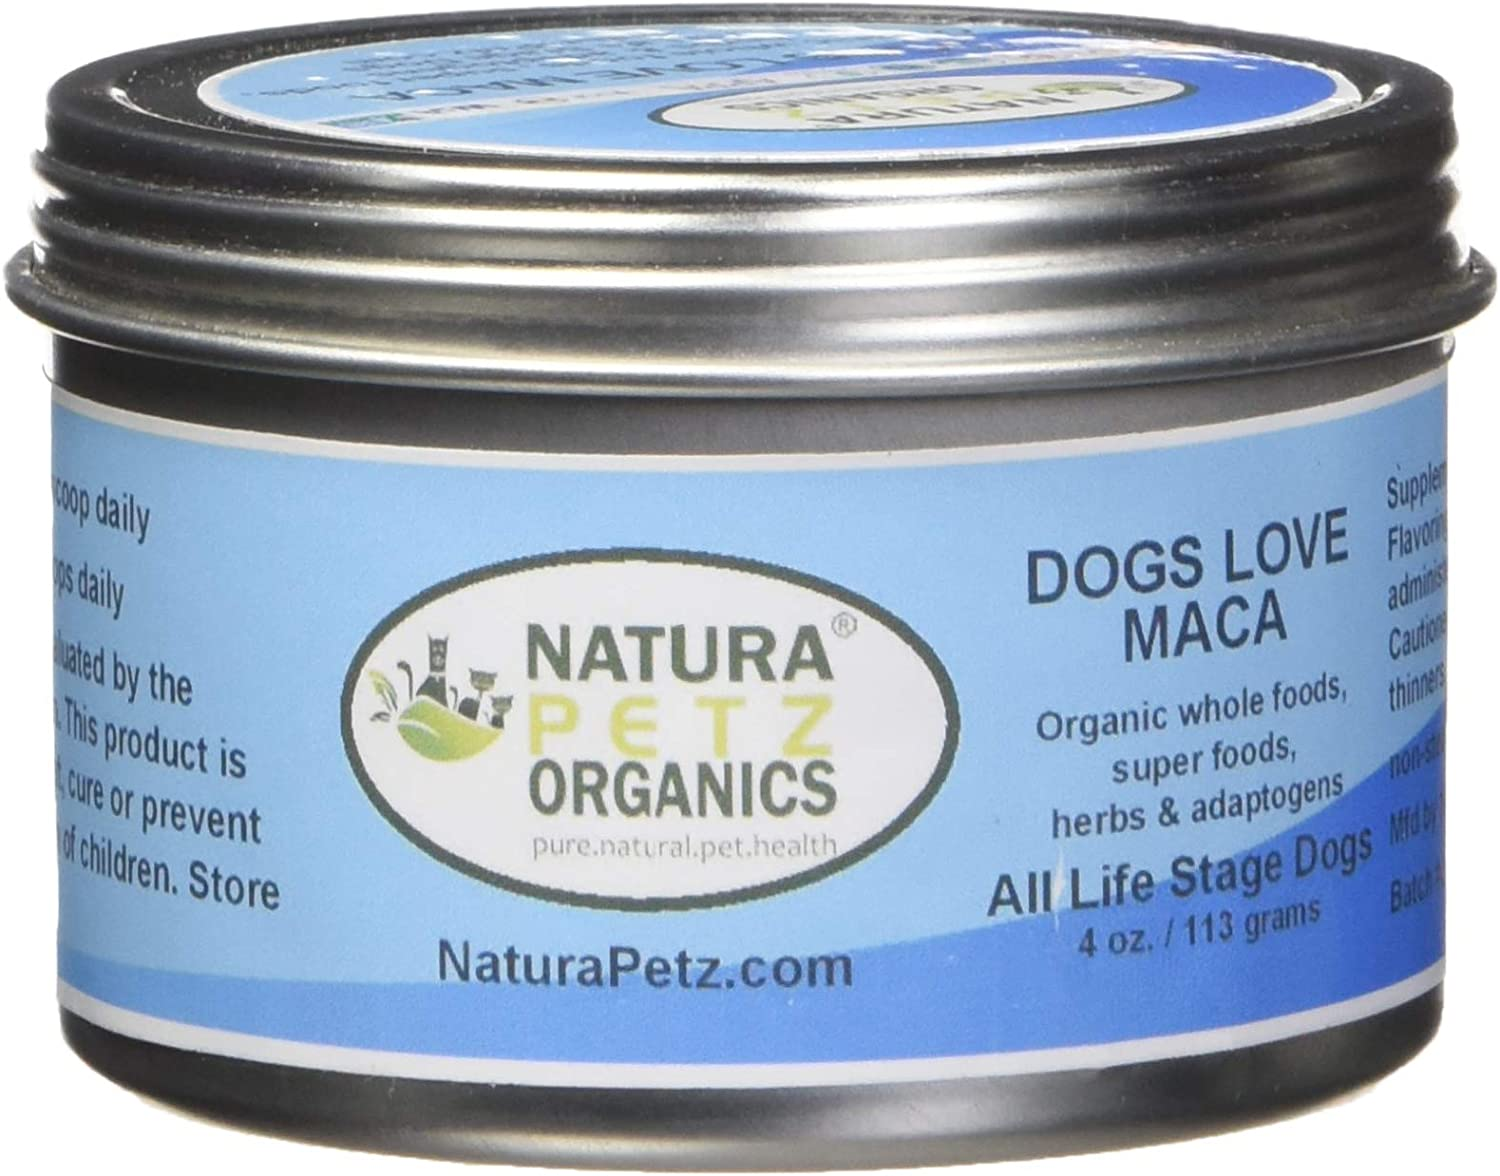 Dogs Love Maca to include Glandular Support for Dogs